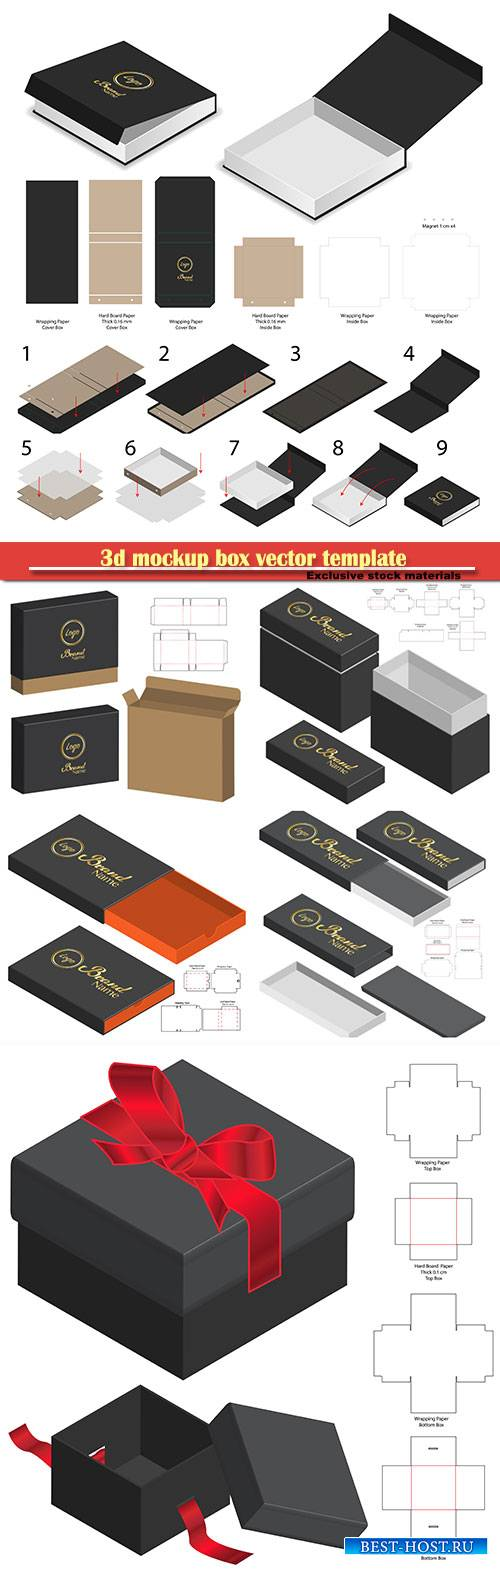 3d mockup box vector template